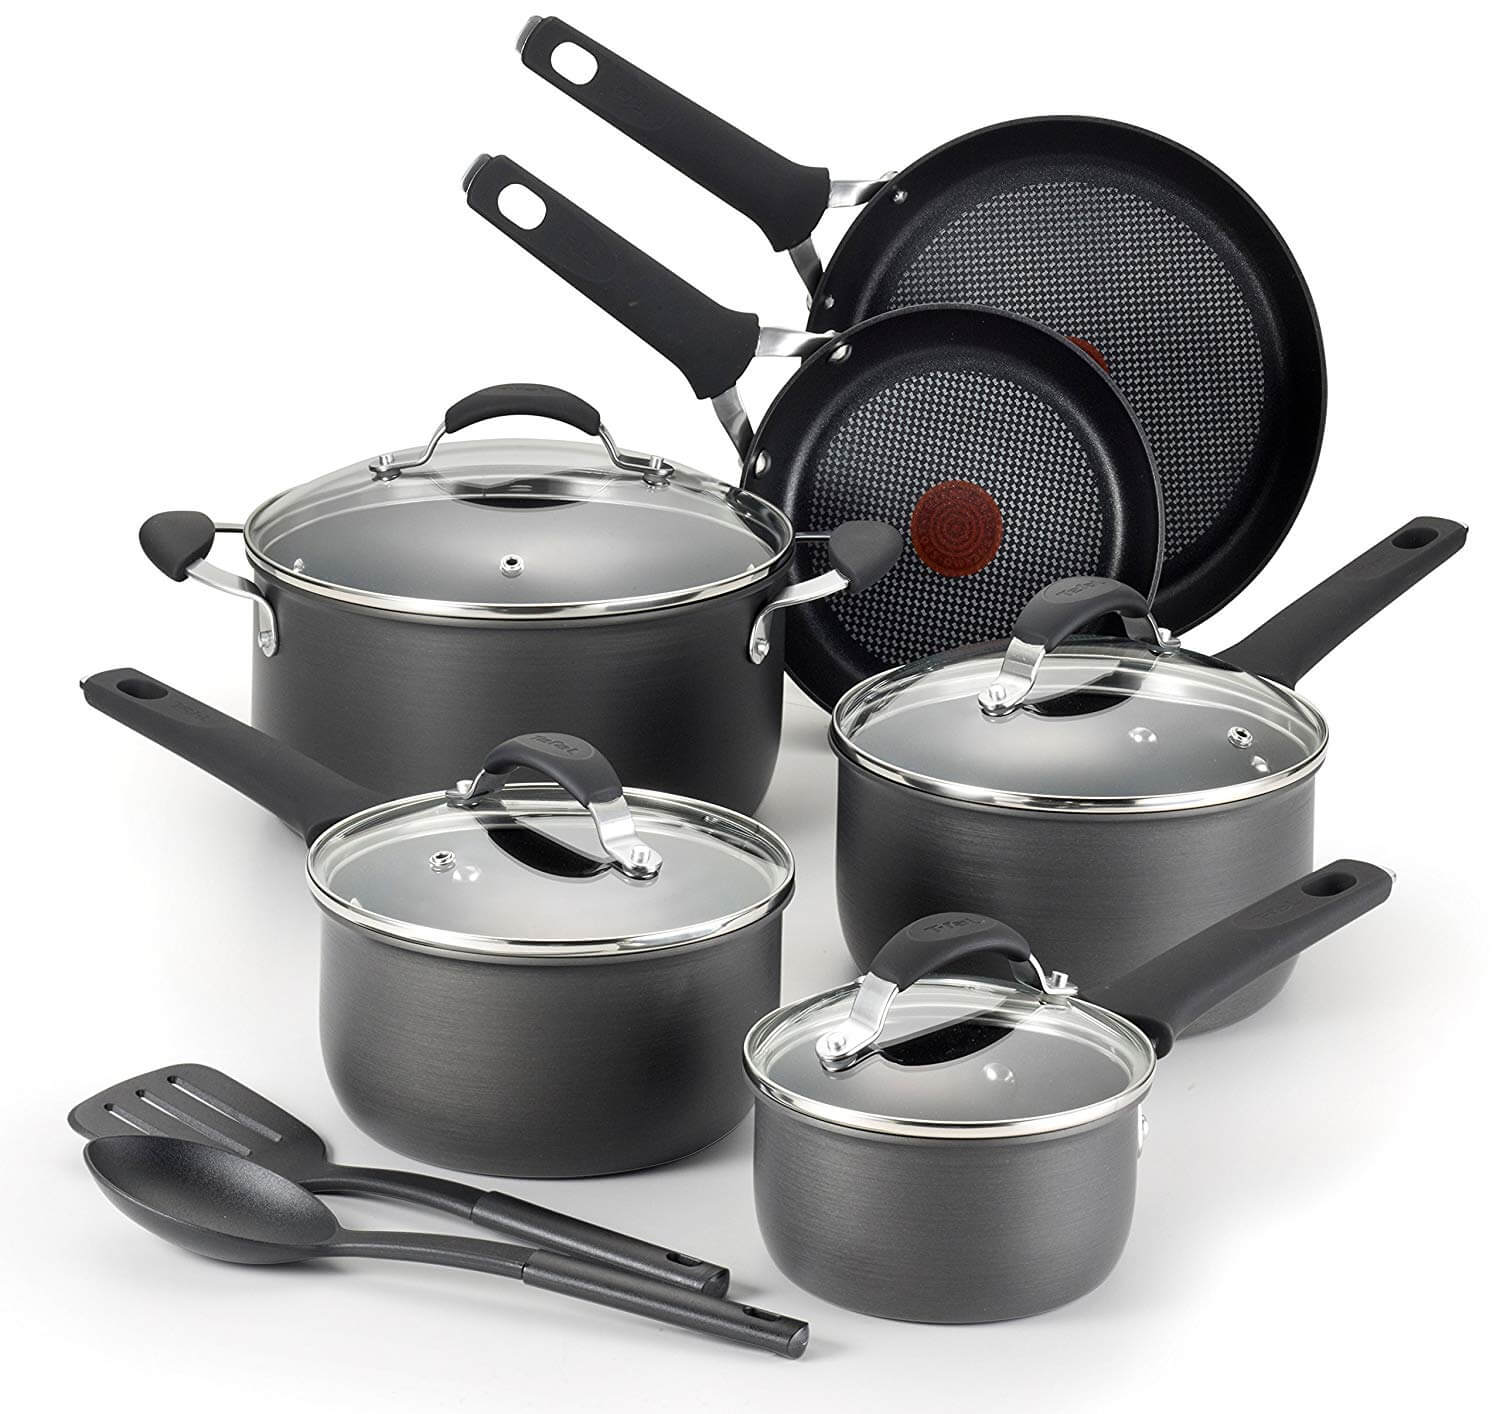 T-fal E817SC Endura Hard Anodized Titanium Non-stick Dishwasher Safe Cookware Set